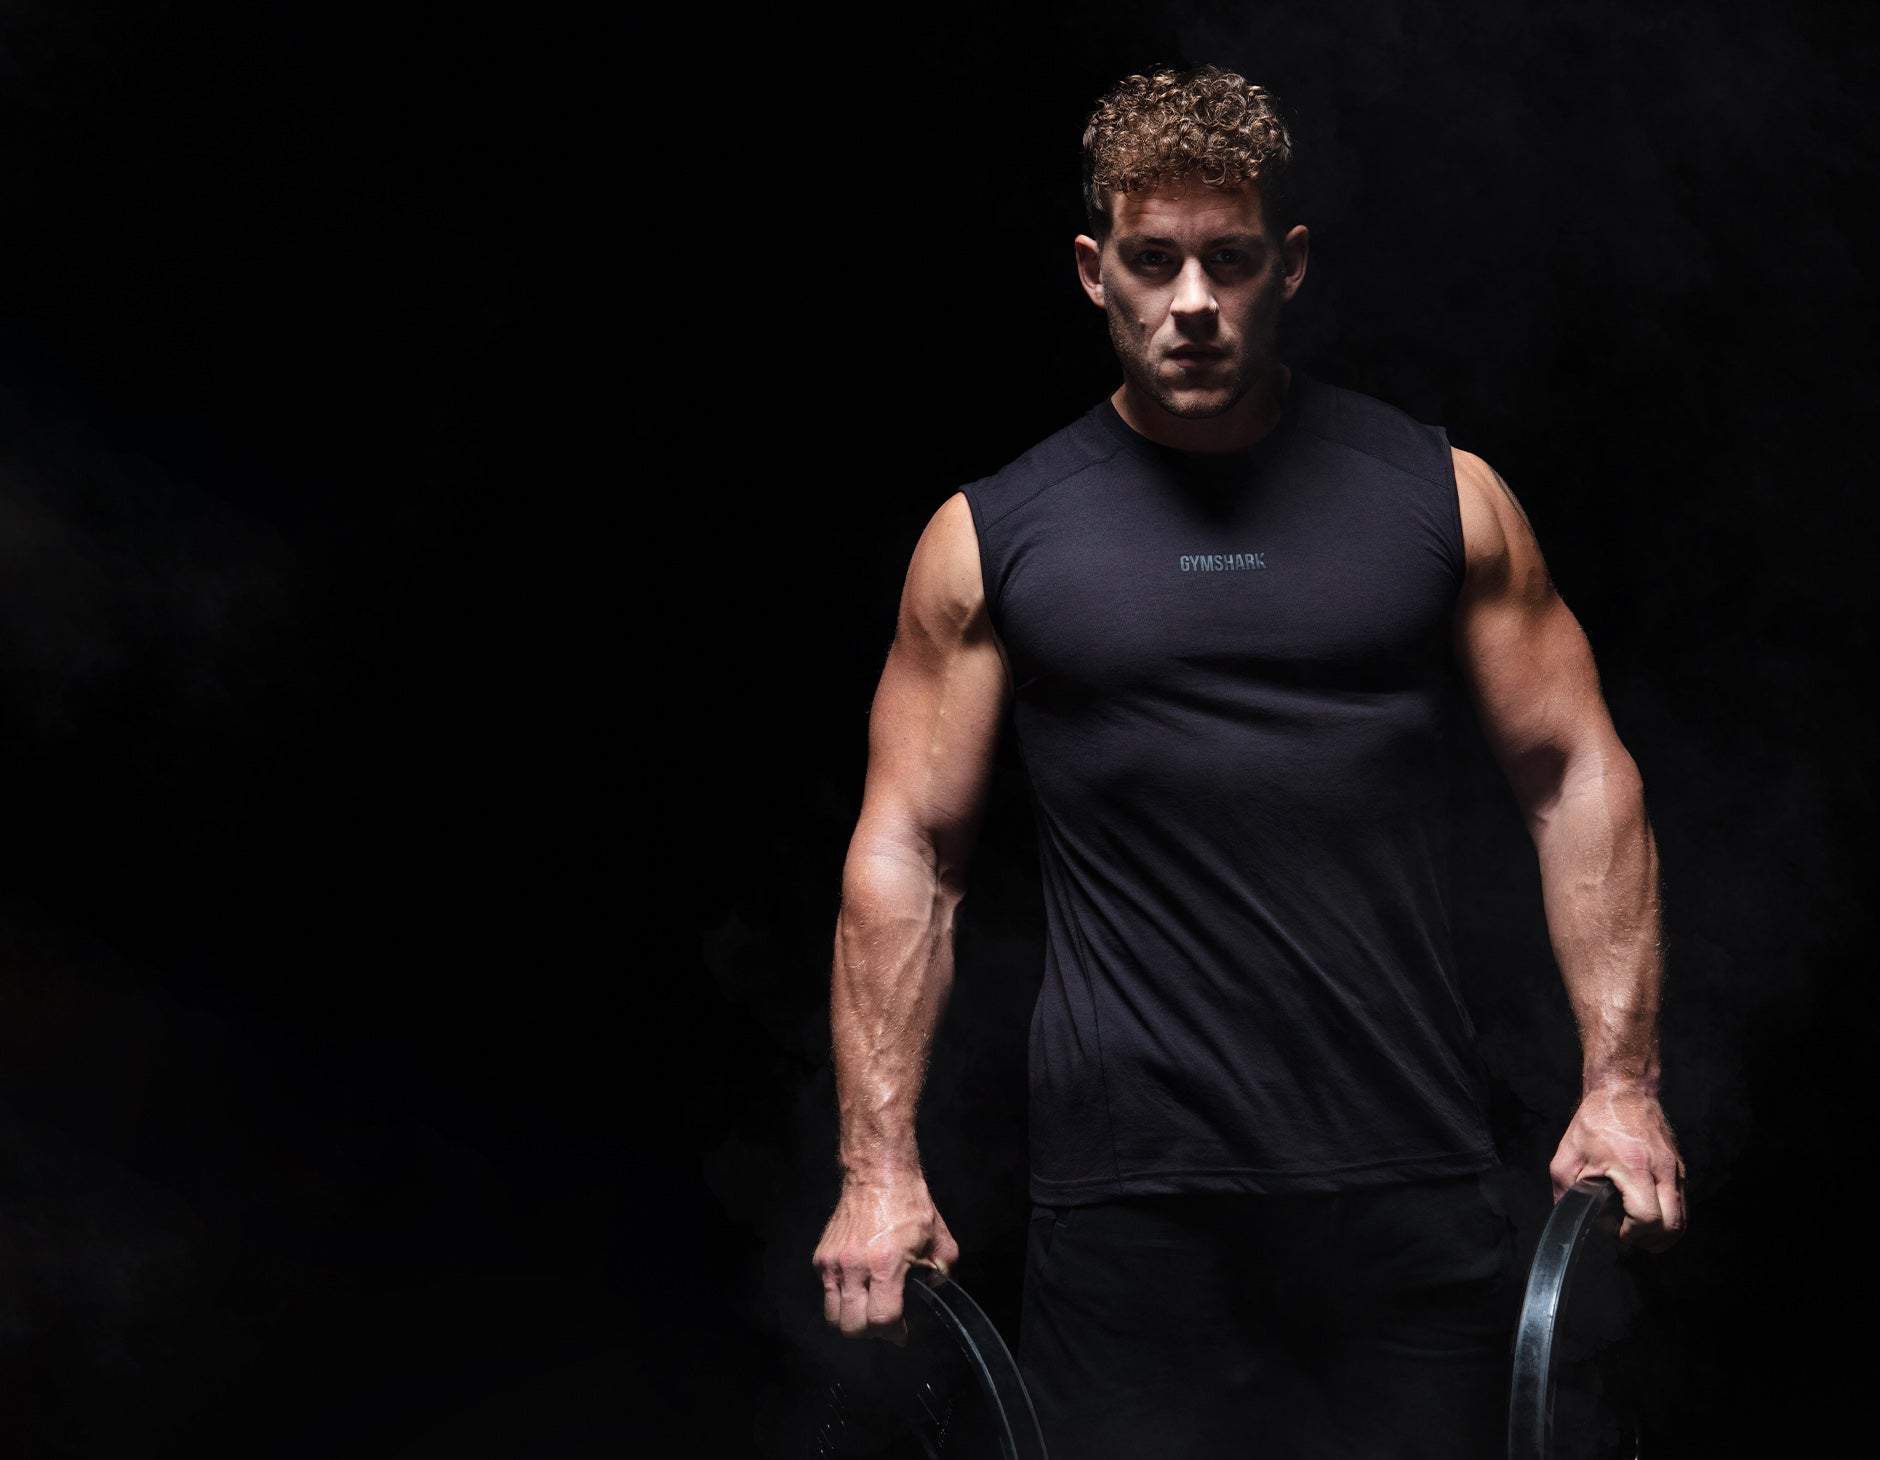 Jack Eyers lifting weights while wearing the Chalk Collection in a black room with a spotlight on him.